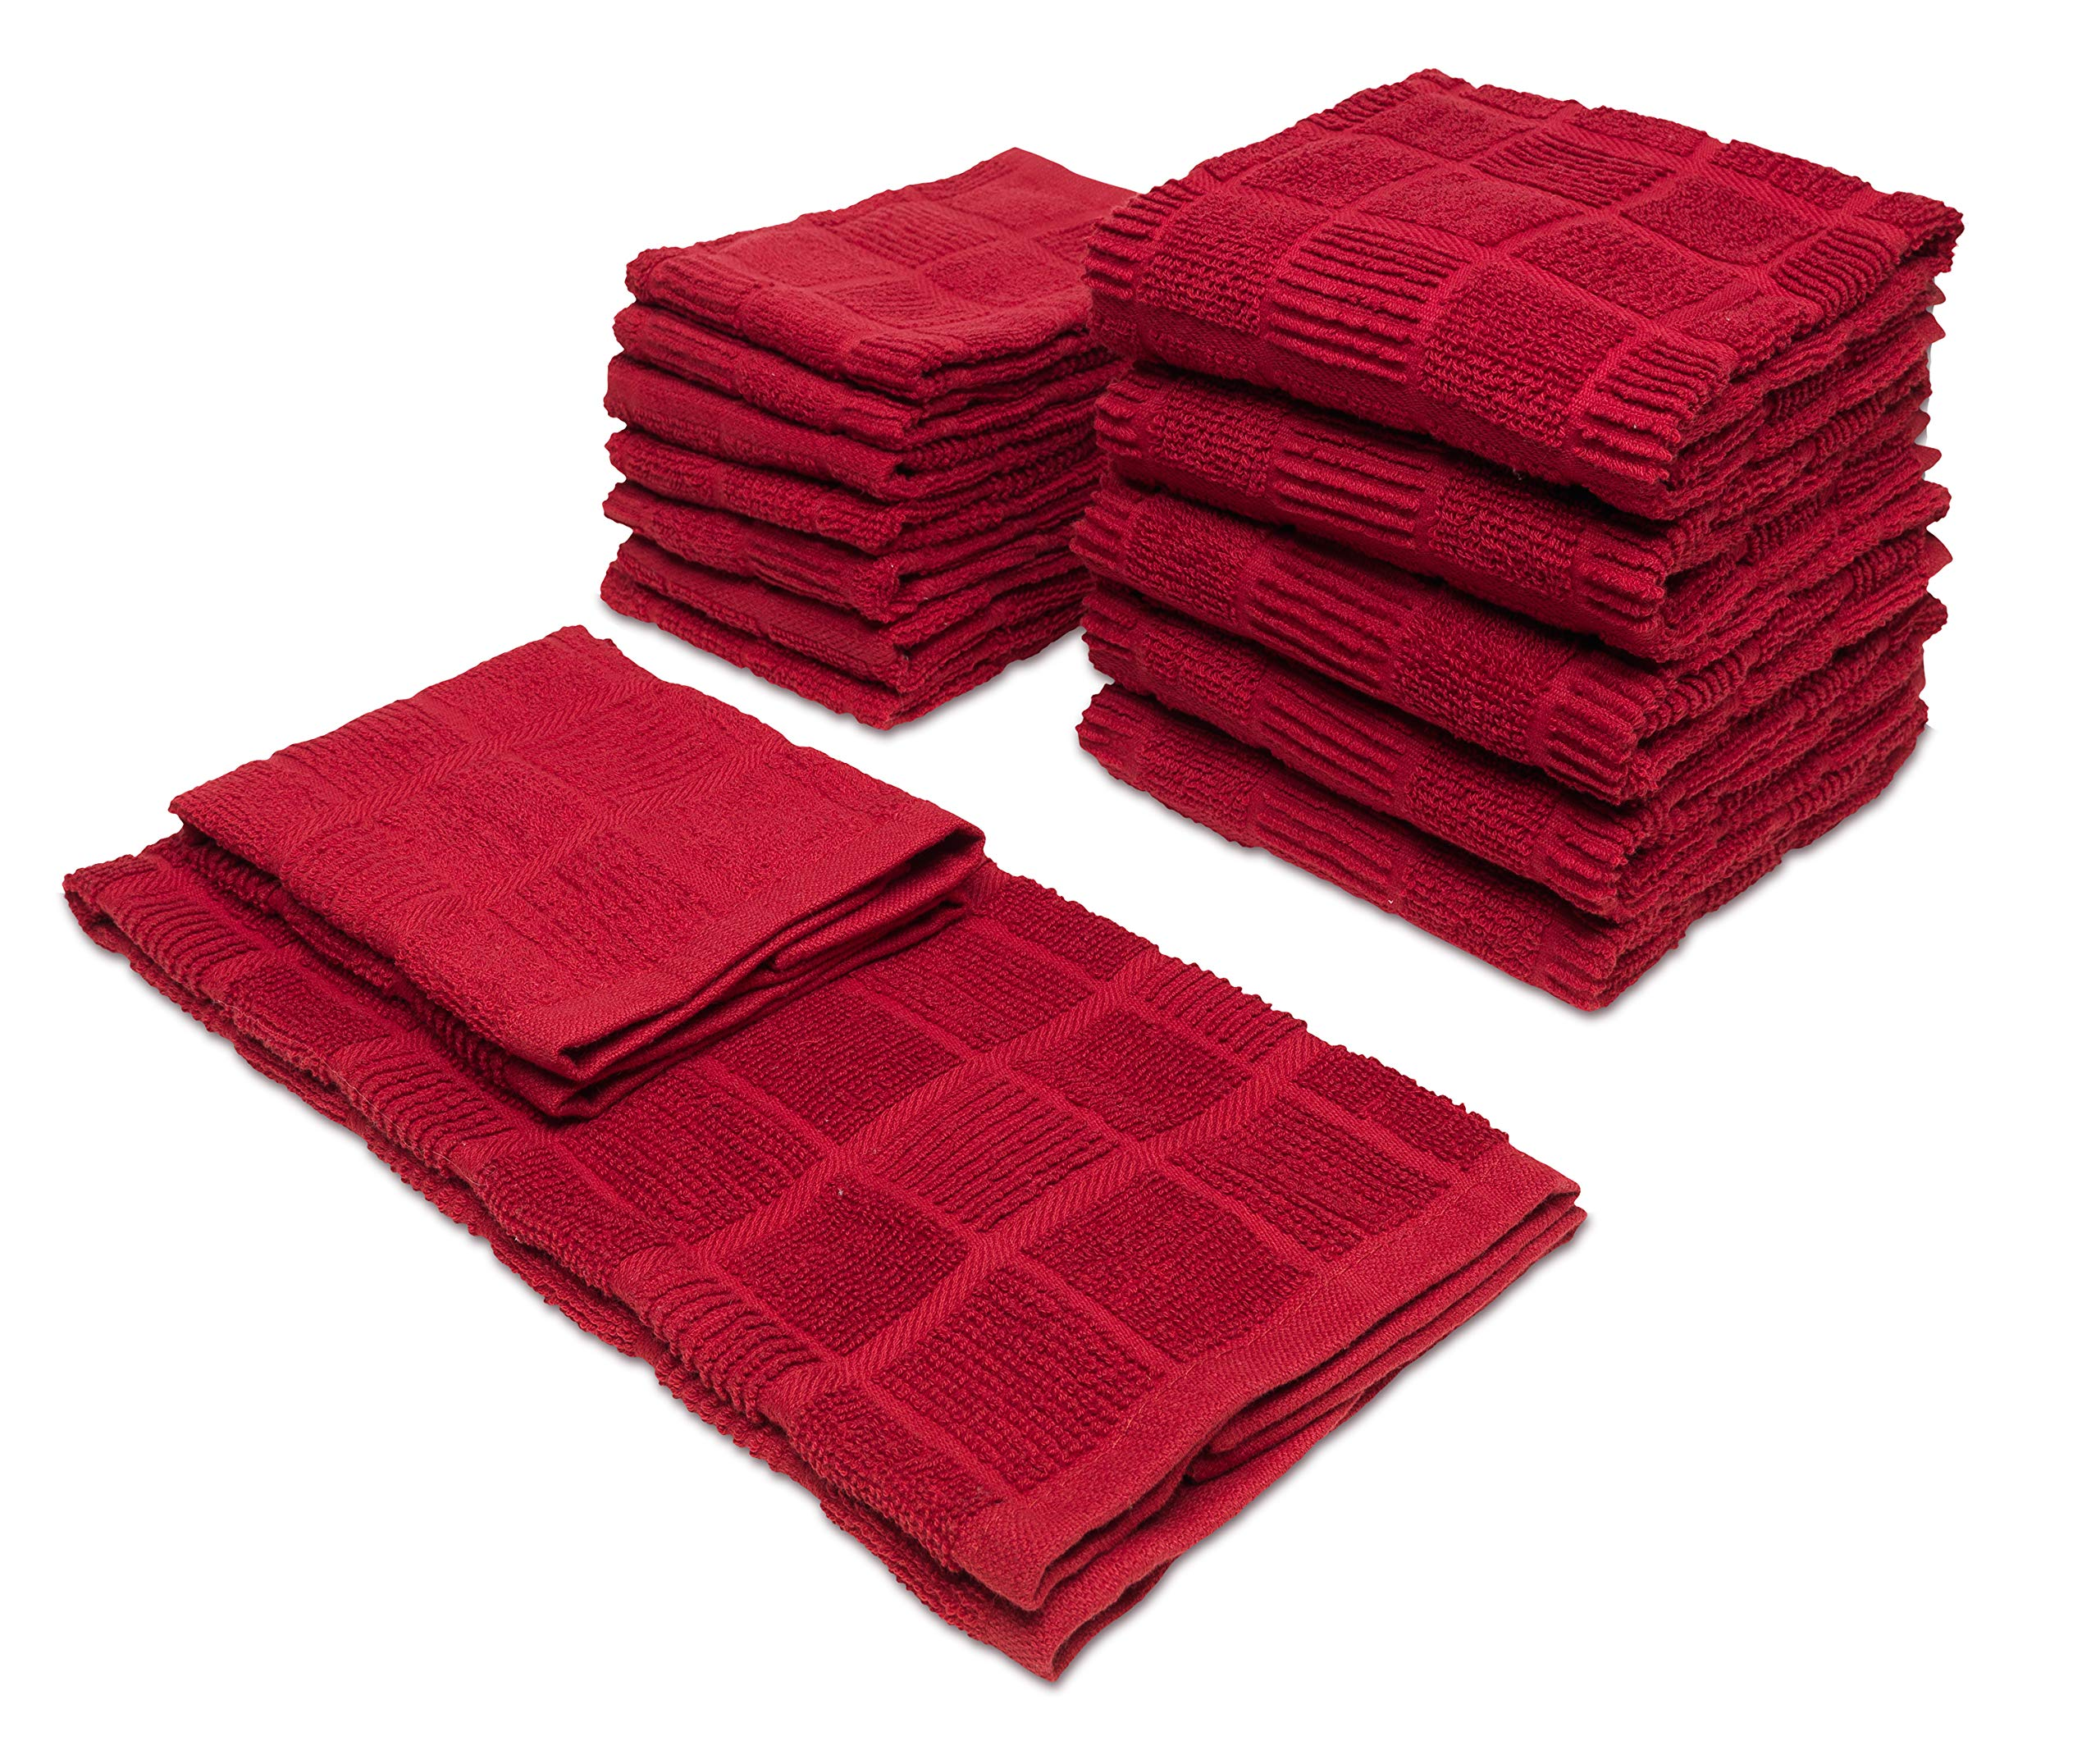 Popular Bath Kitchen Towels and Dish Cloths, Aria Collection, 14-Piece Set, Red by Popular Bath